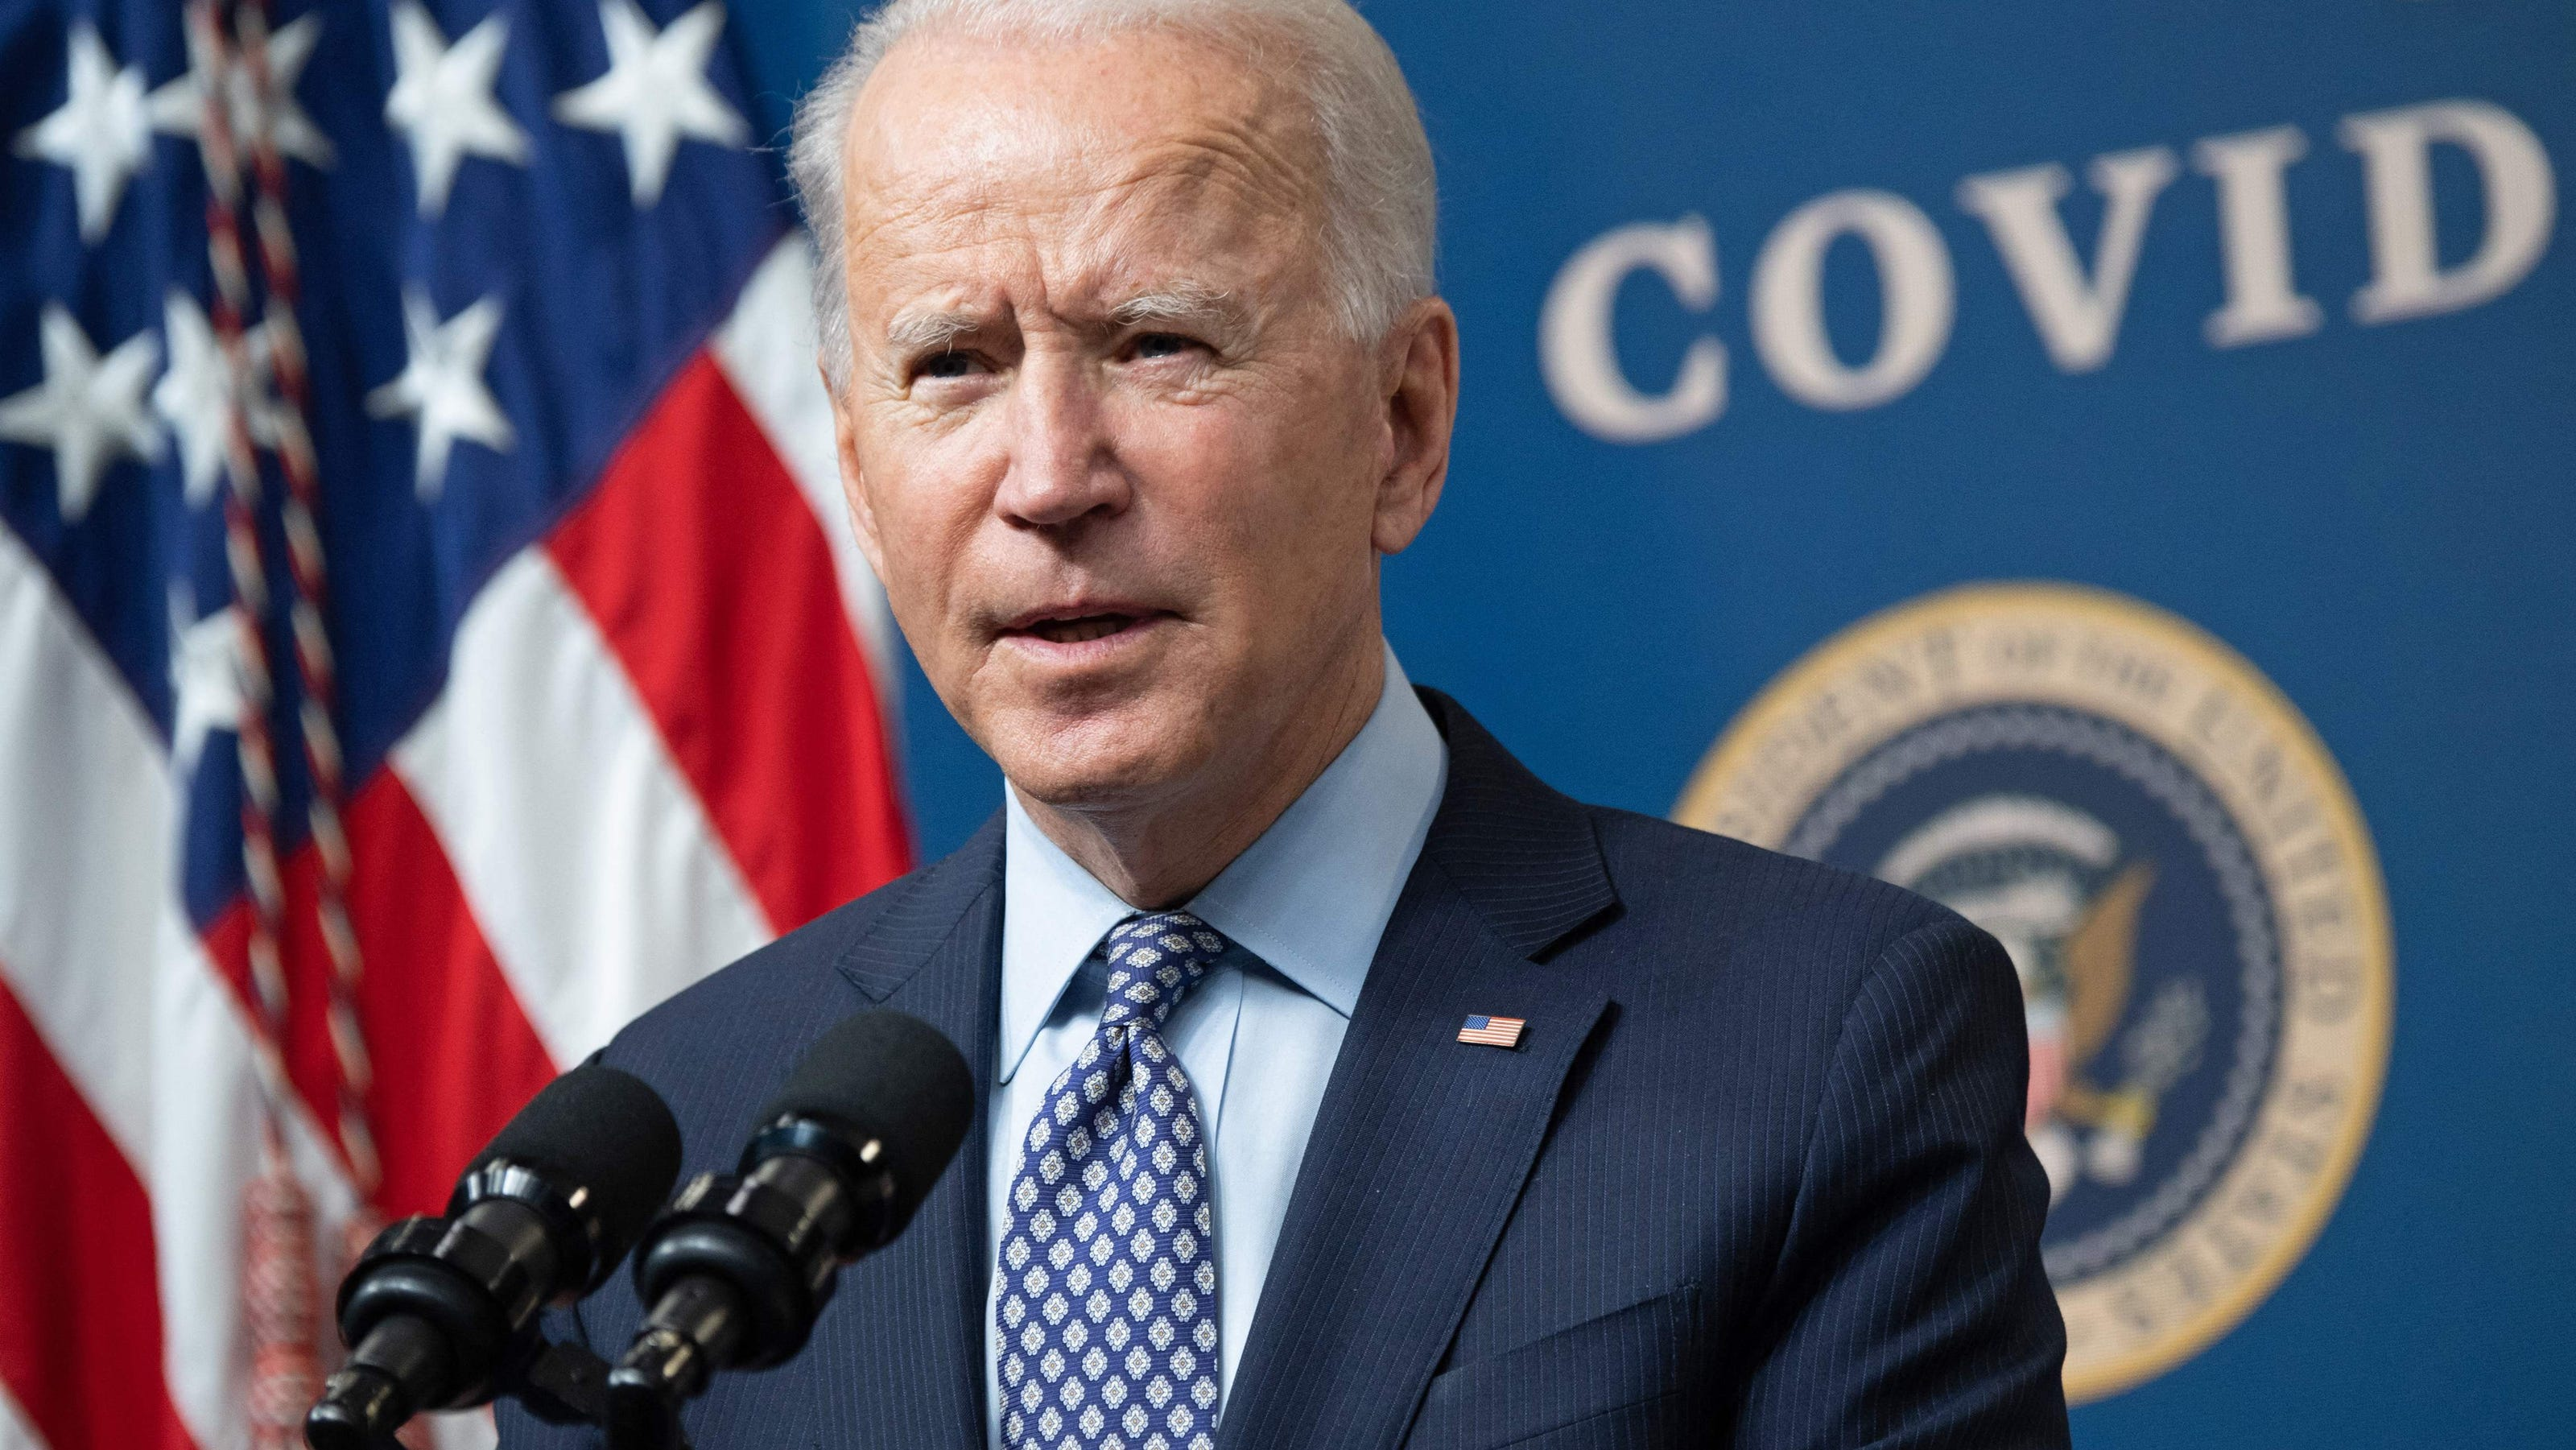 Joe Biden's COVID relief plan will get a House vote Friday, but it awaits a Senate divided over bill's size, scope